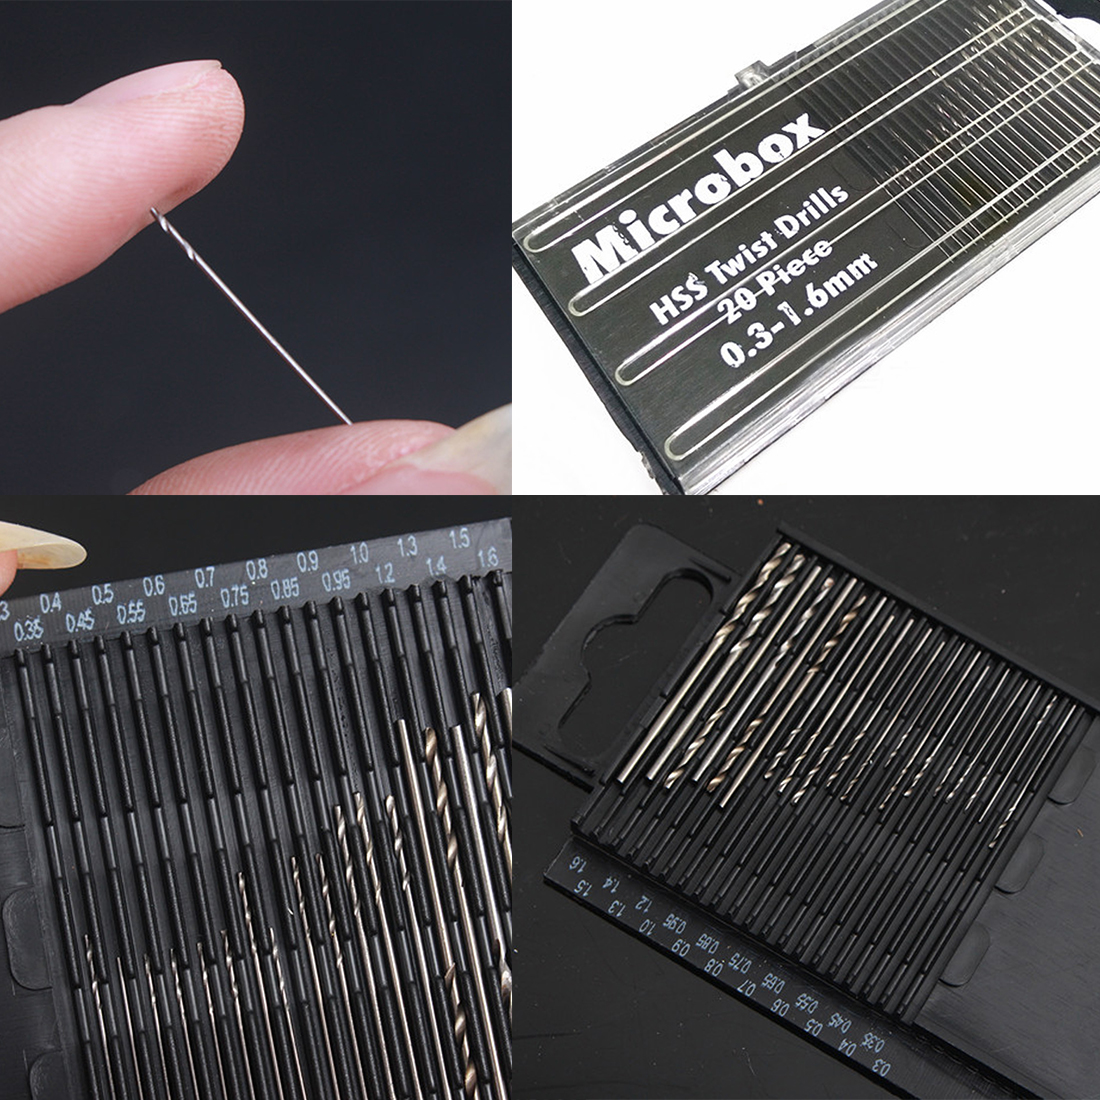 20Pcs Mini Drill Bit Set HSS Micro Twist Drill Bit Set 0.3mm-1.6mm Model Craft With Case Repair Tools Tiny Micro Twist Drill Bit